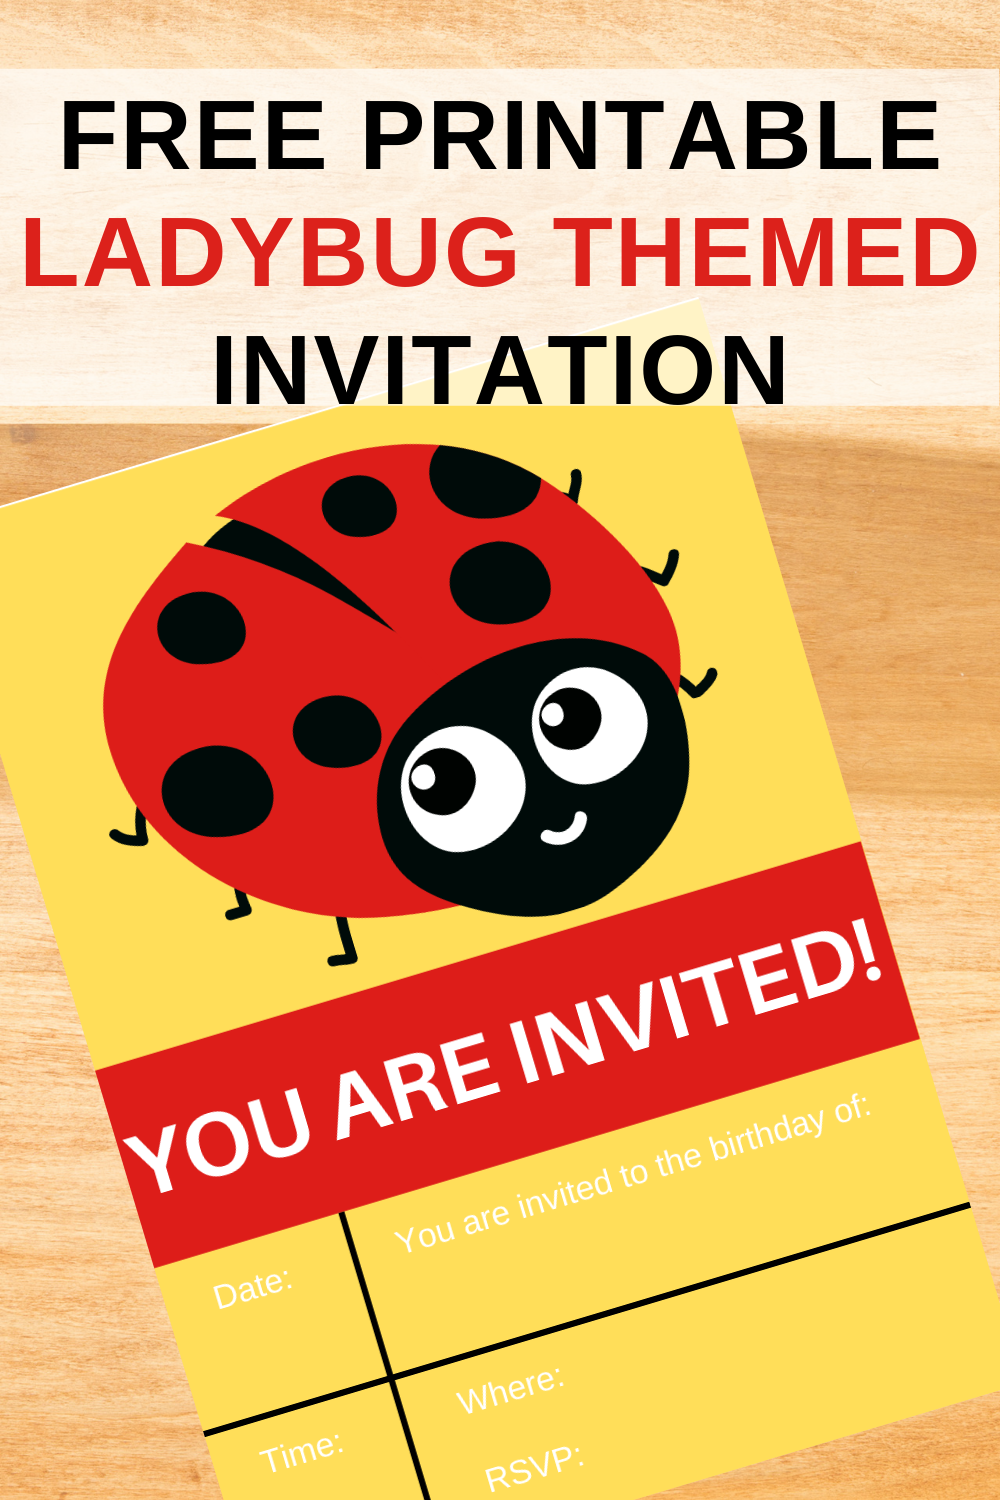 free printable ladybug invite for a little girls birthday party